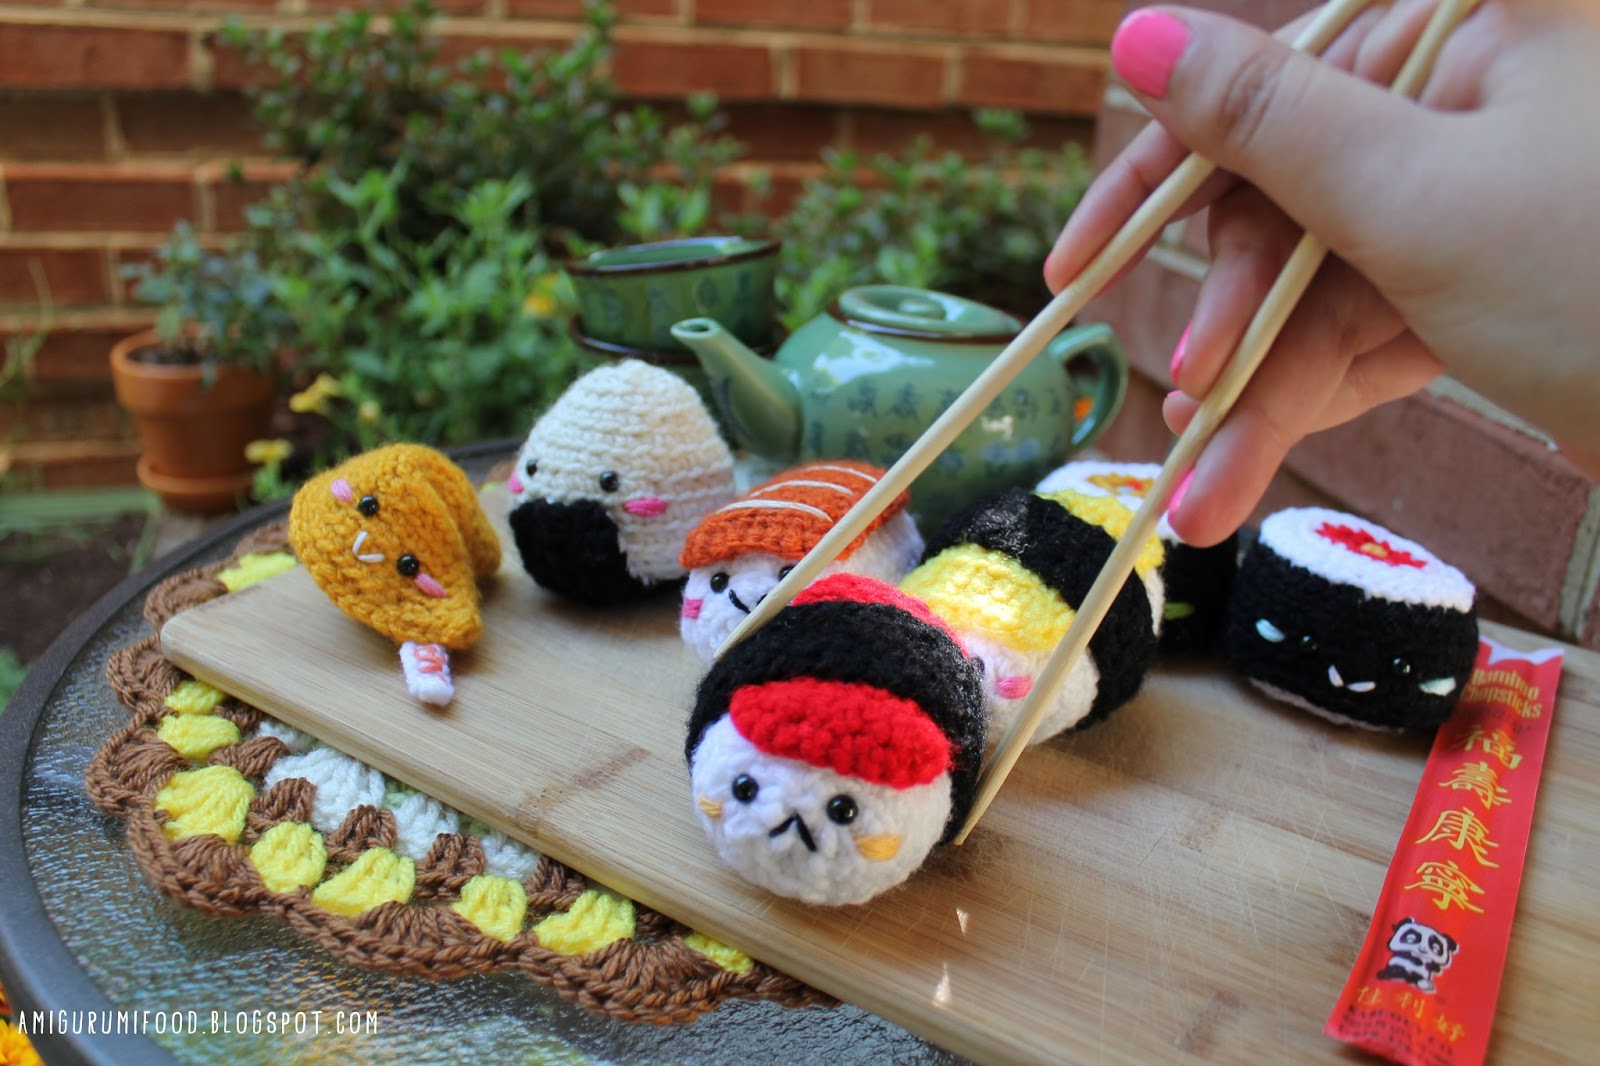 Amigurumi Food: Sushi Amigurumi food